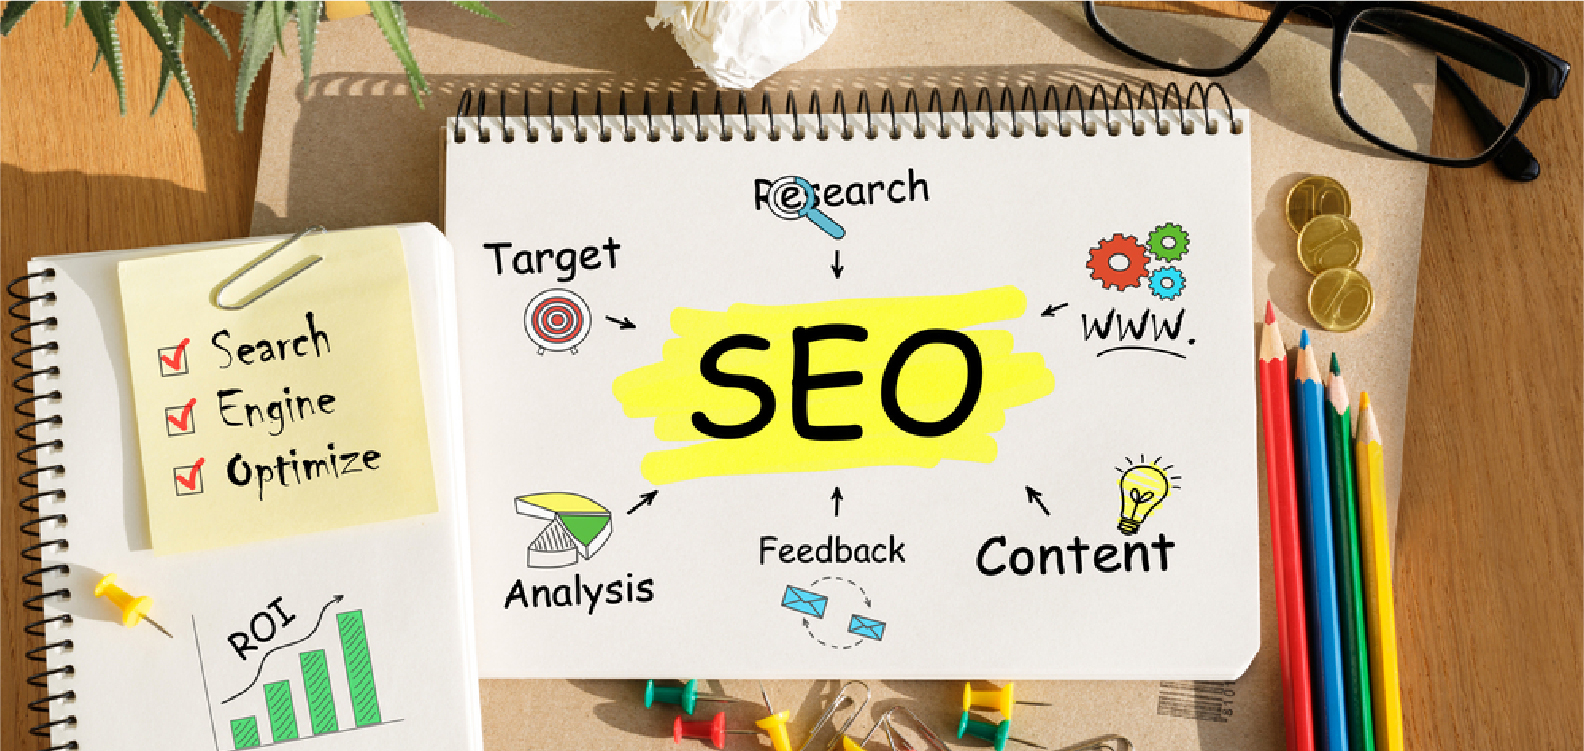 Dreamit work on the 3 fundamental principals to enhance a website rank in Google